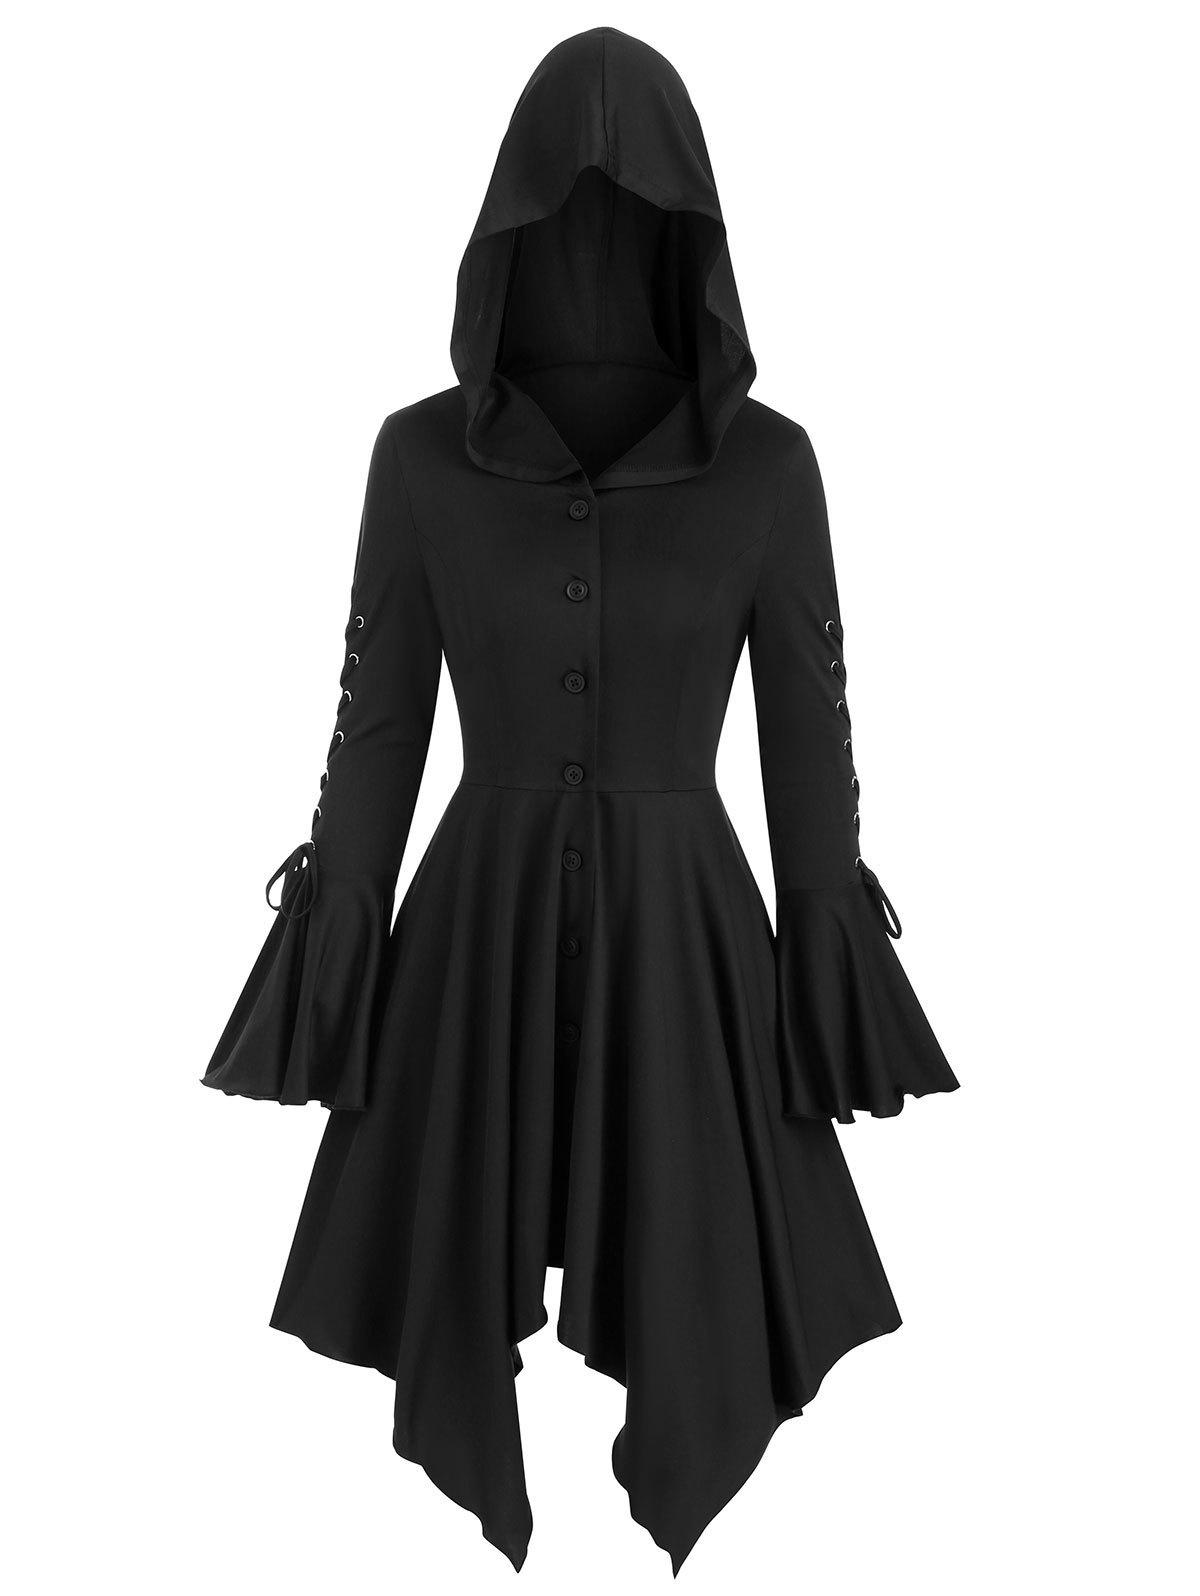 Hooded Lace-up Poet Sleeve Button Up Hanky Hem Skirted Gothic Coat - BLACK 2XL